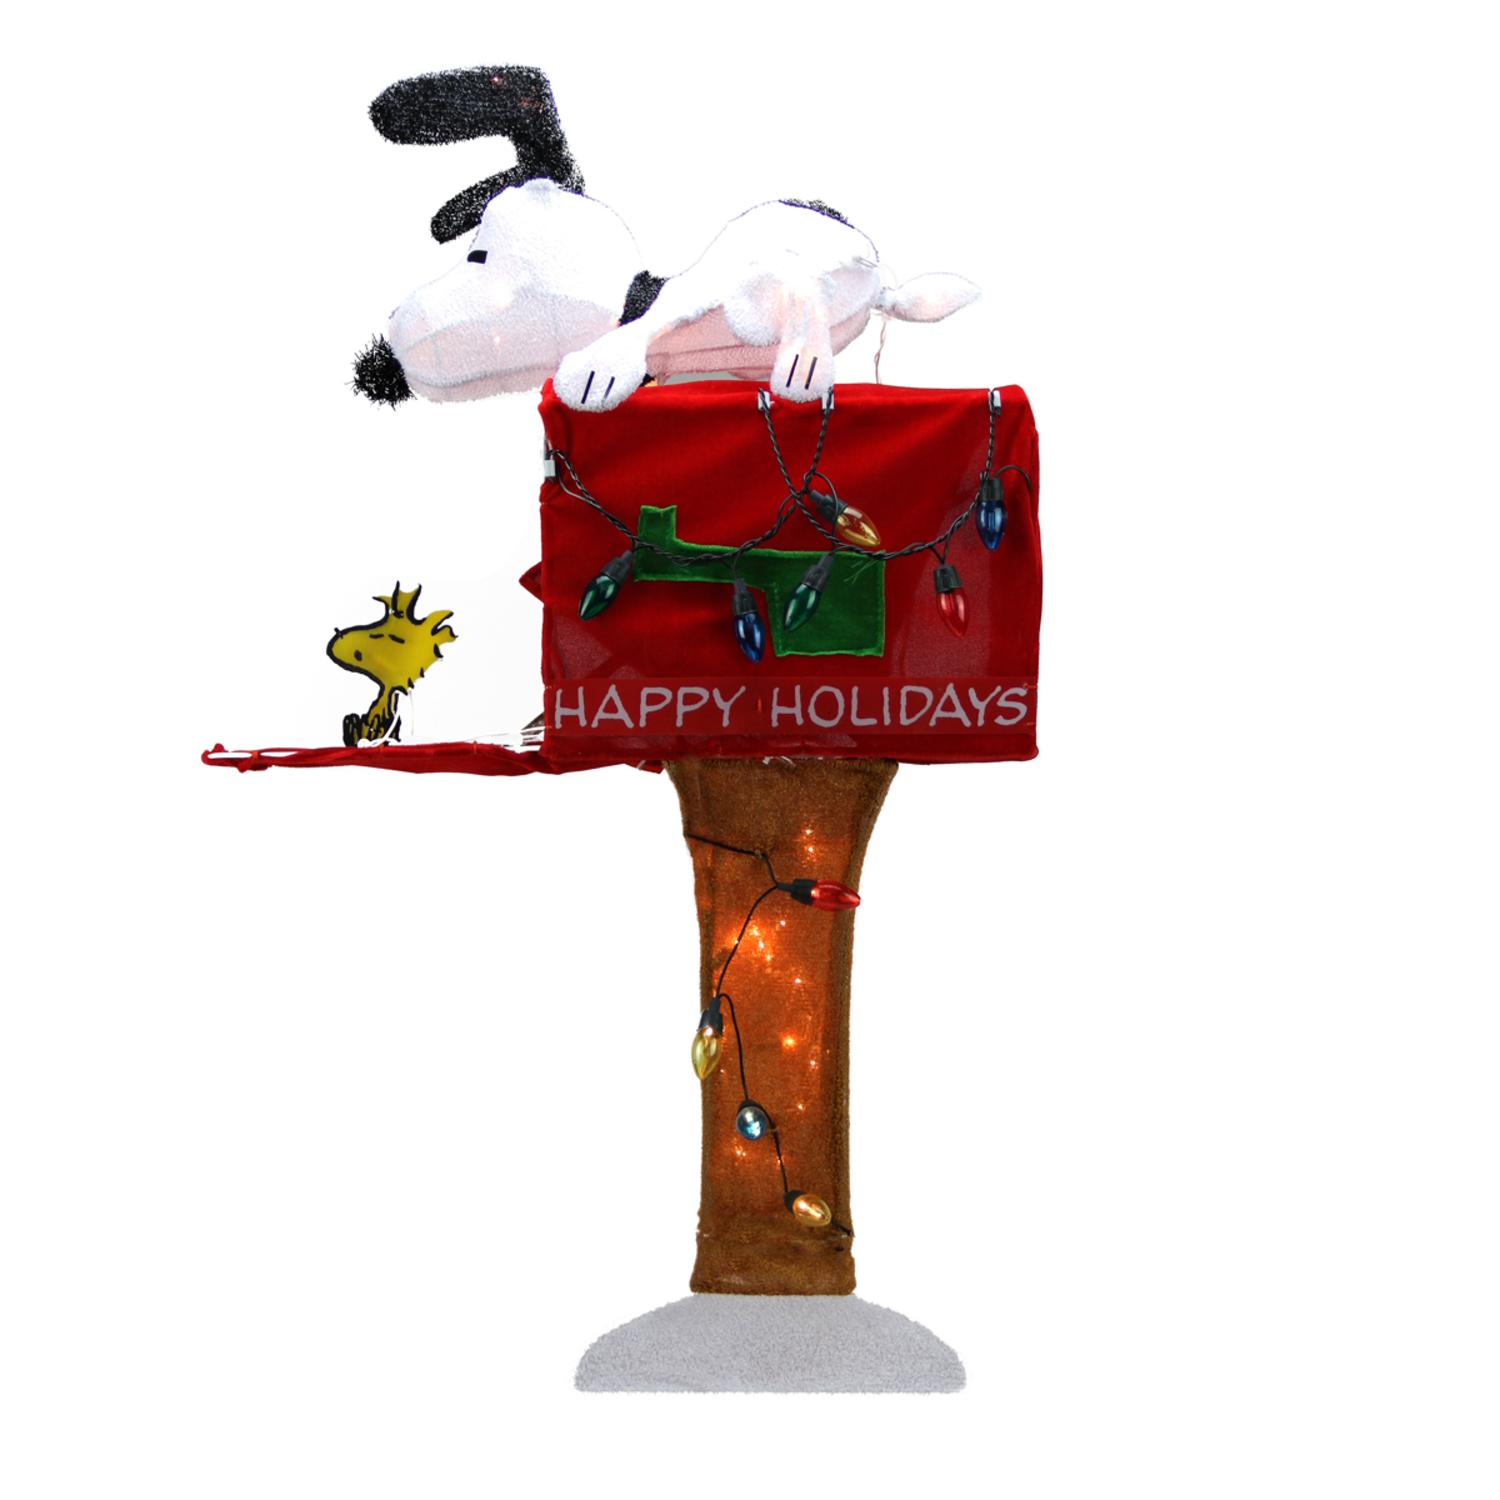 "36"" Pre-Lit Peanuts Snoopy with Red Mailbox Animated Christmas Yard Art Decoration - Clear Lights"